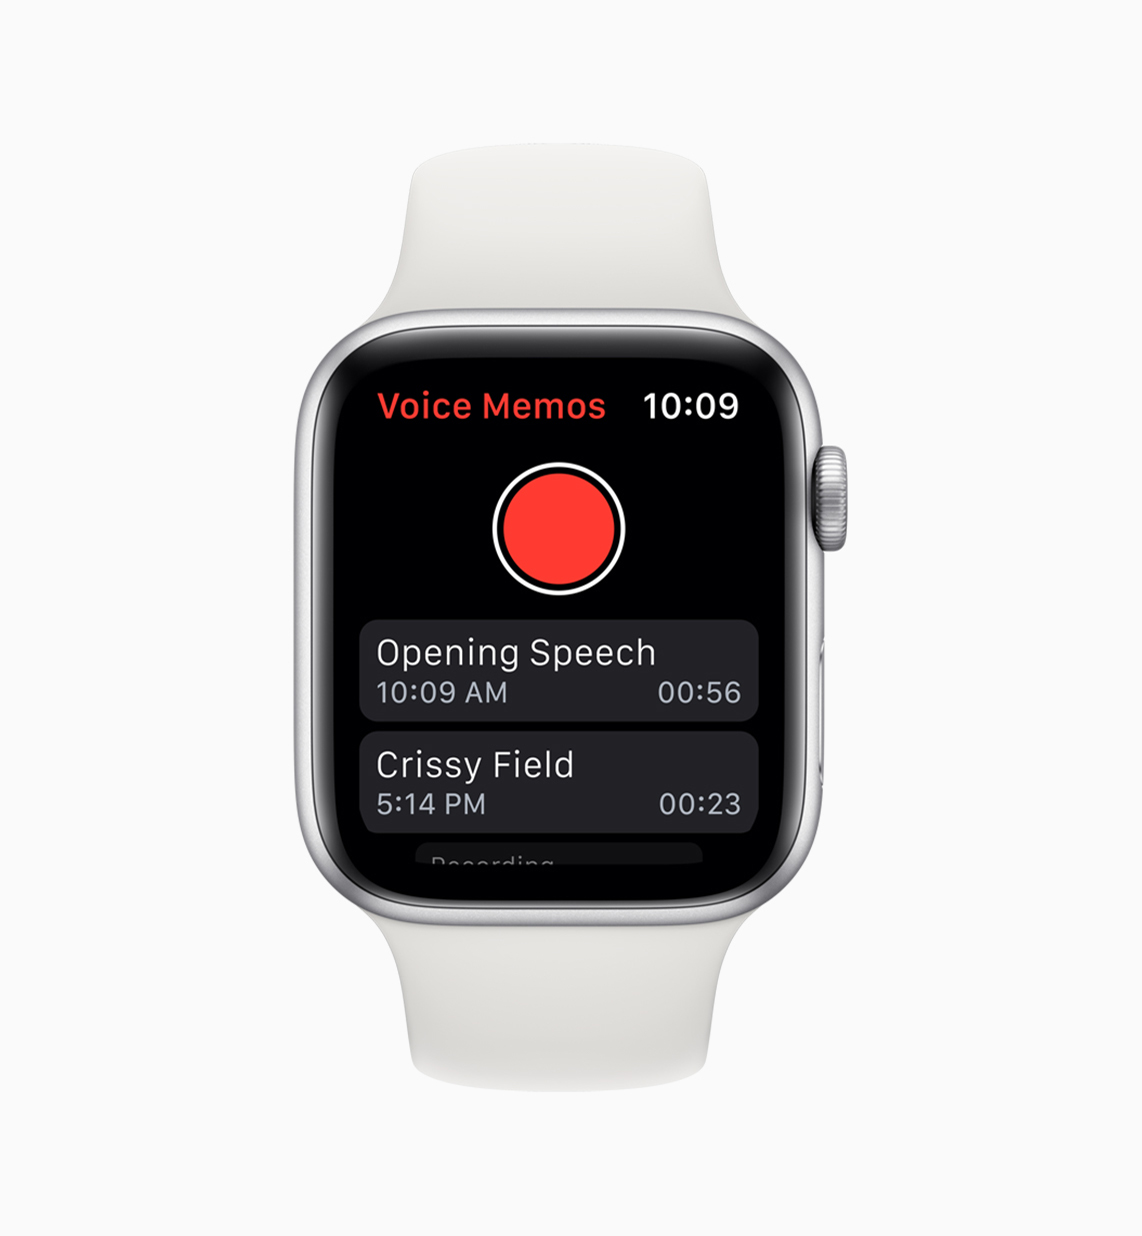 3de65908966 apple-watchos6_voice-memos_060319_carousel.jpg